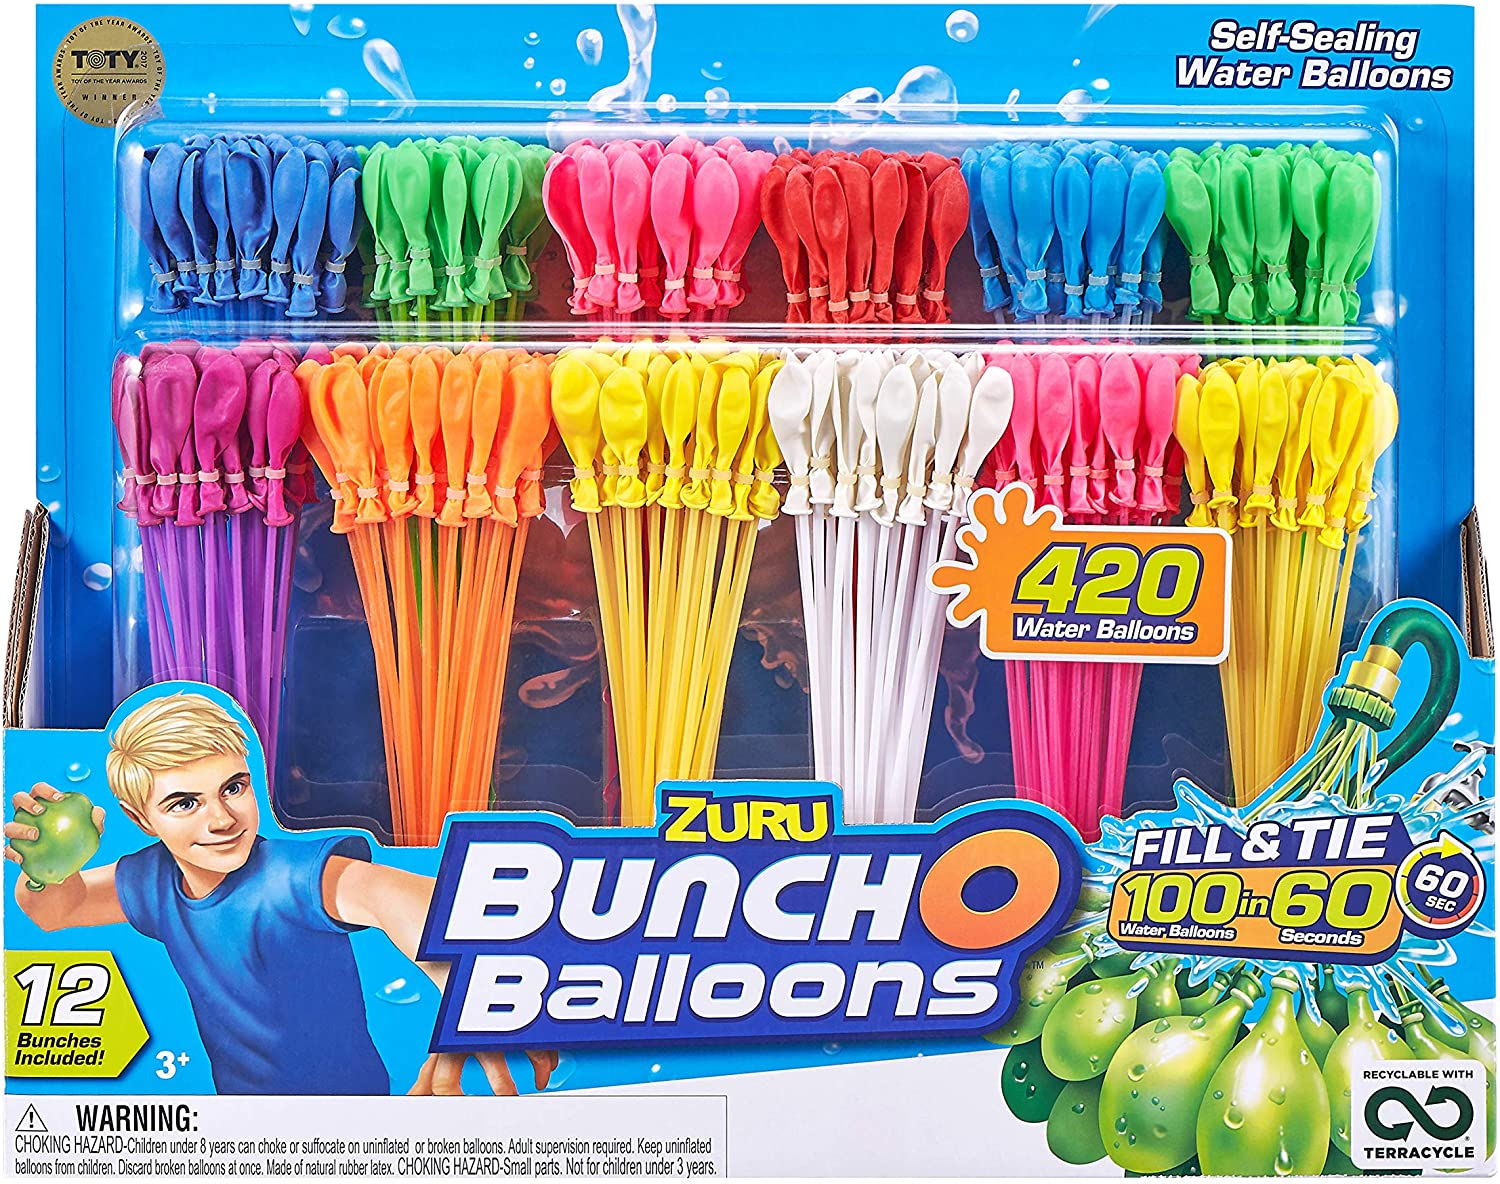 Instant 440 Self-Sealing Water Balloons 12 Packs Fill in 60 Seconds 440 Balloons Easy Quick Summer Splash Fun Outdoor Backyard Kids and Adults Party Water Bomb Fight Games km990